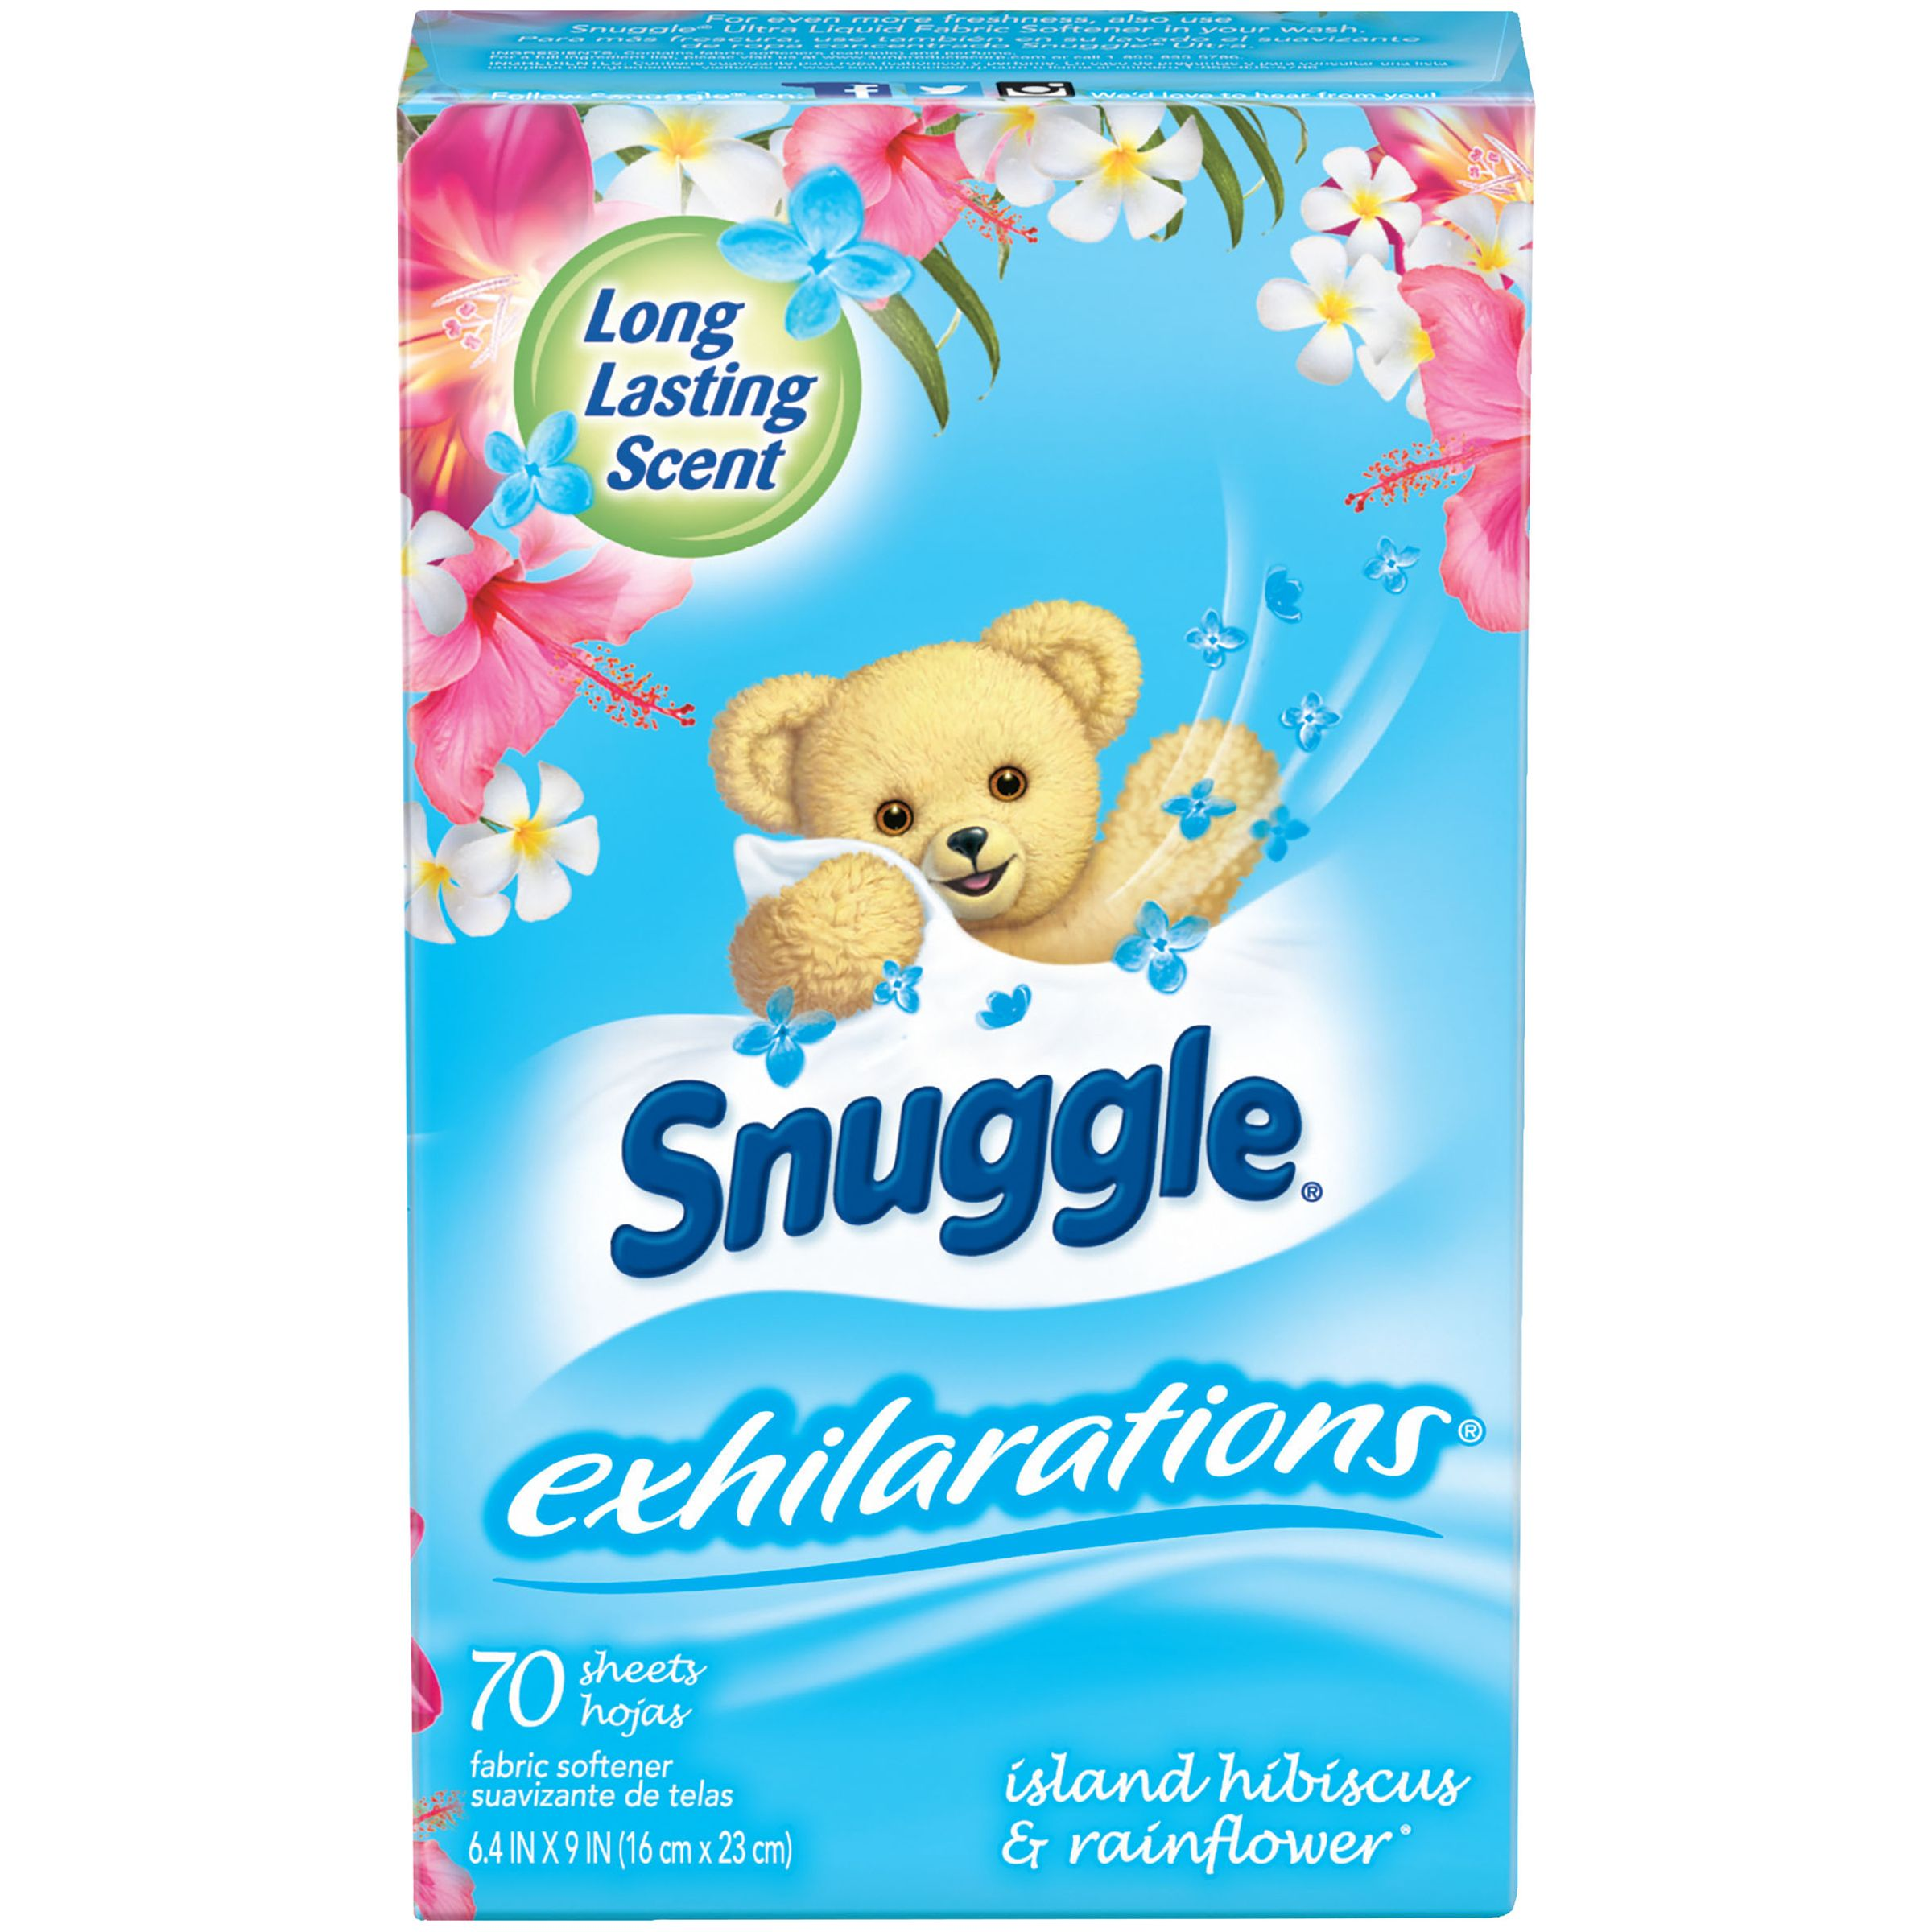 Snuggle Exhilarations Fabric Softener Sheets, Island Hibiscus & Rainflower, 70 Count